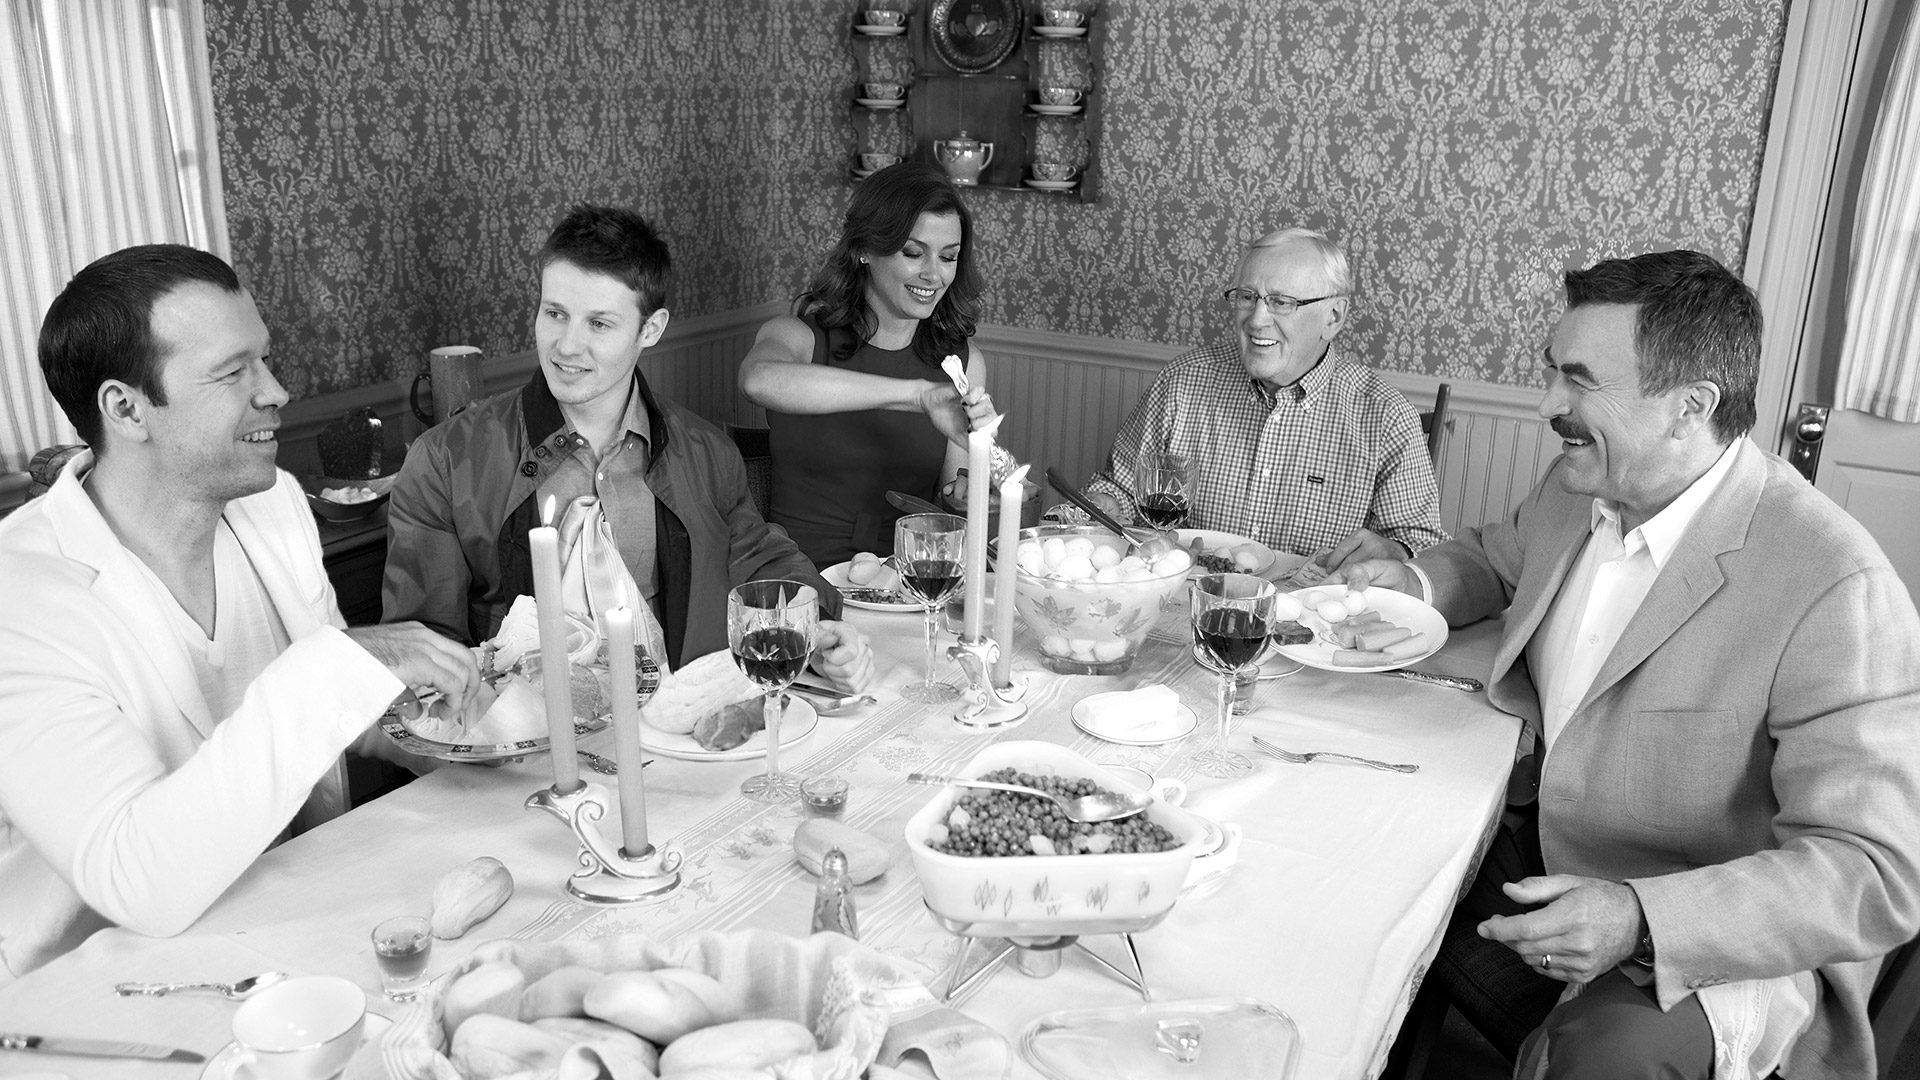 She brings family to the table.